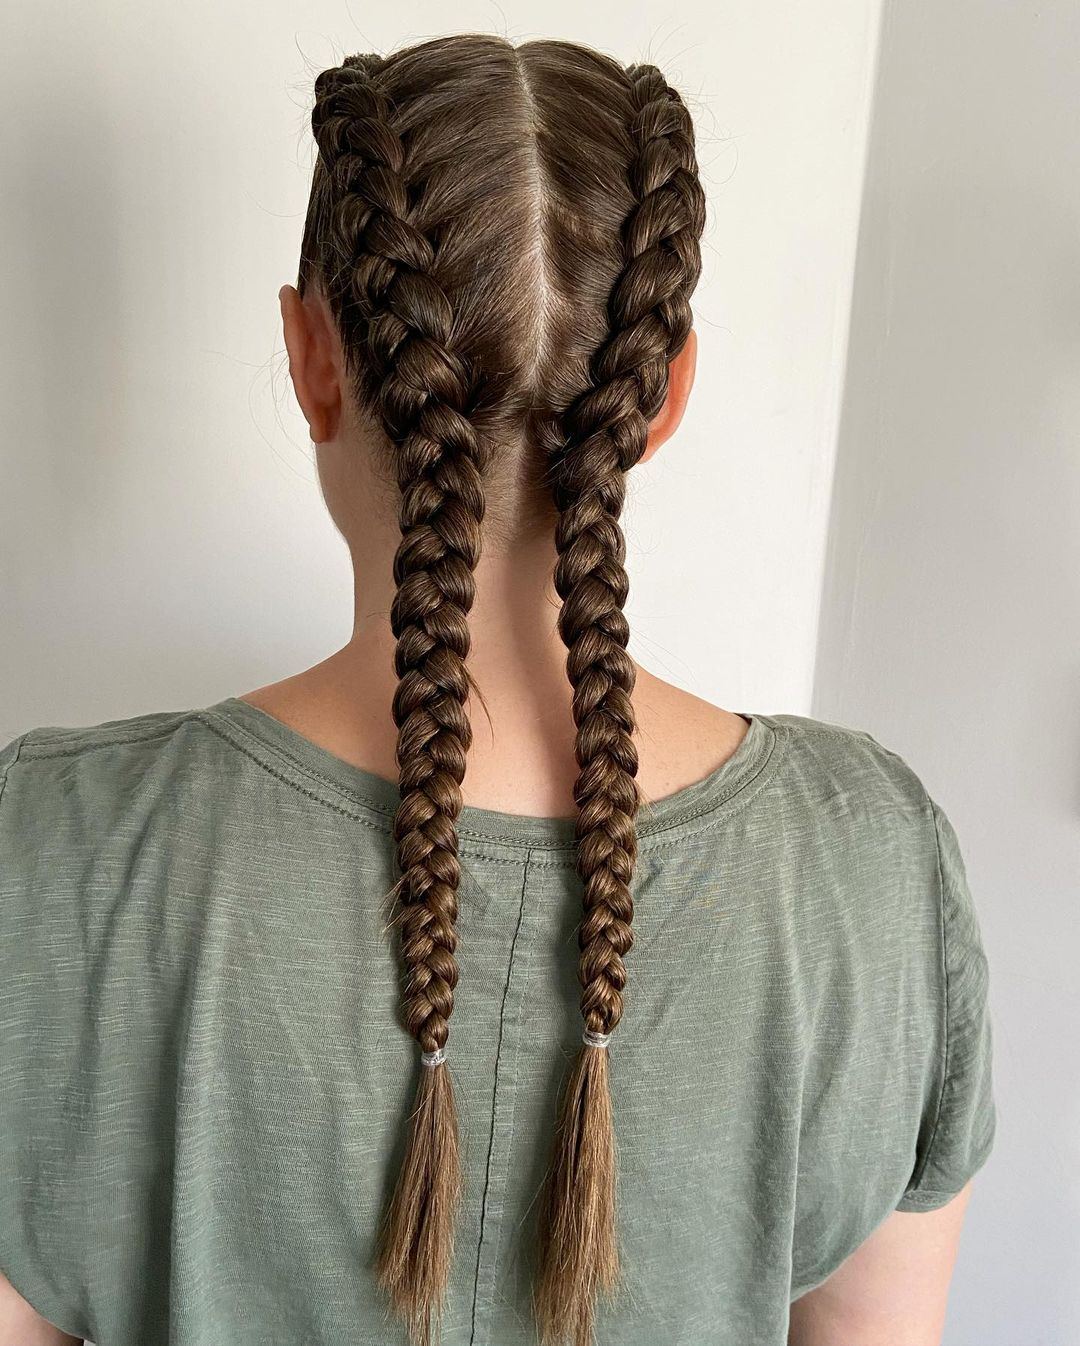 38 Sexiest French Braid Hairstyles That Are Easy To Try